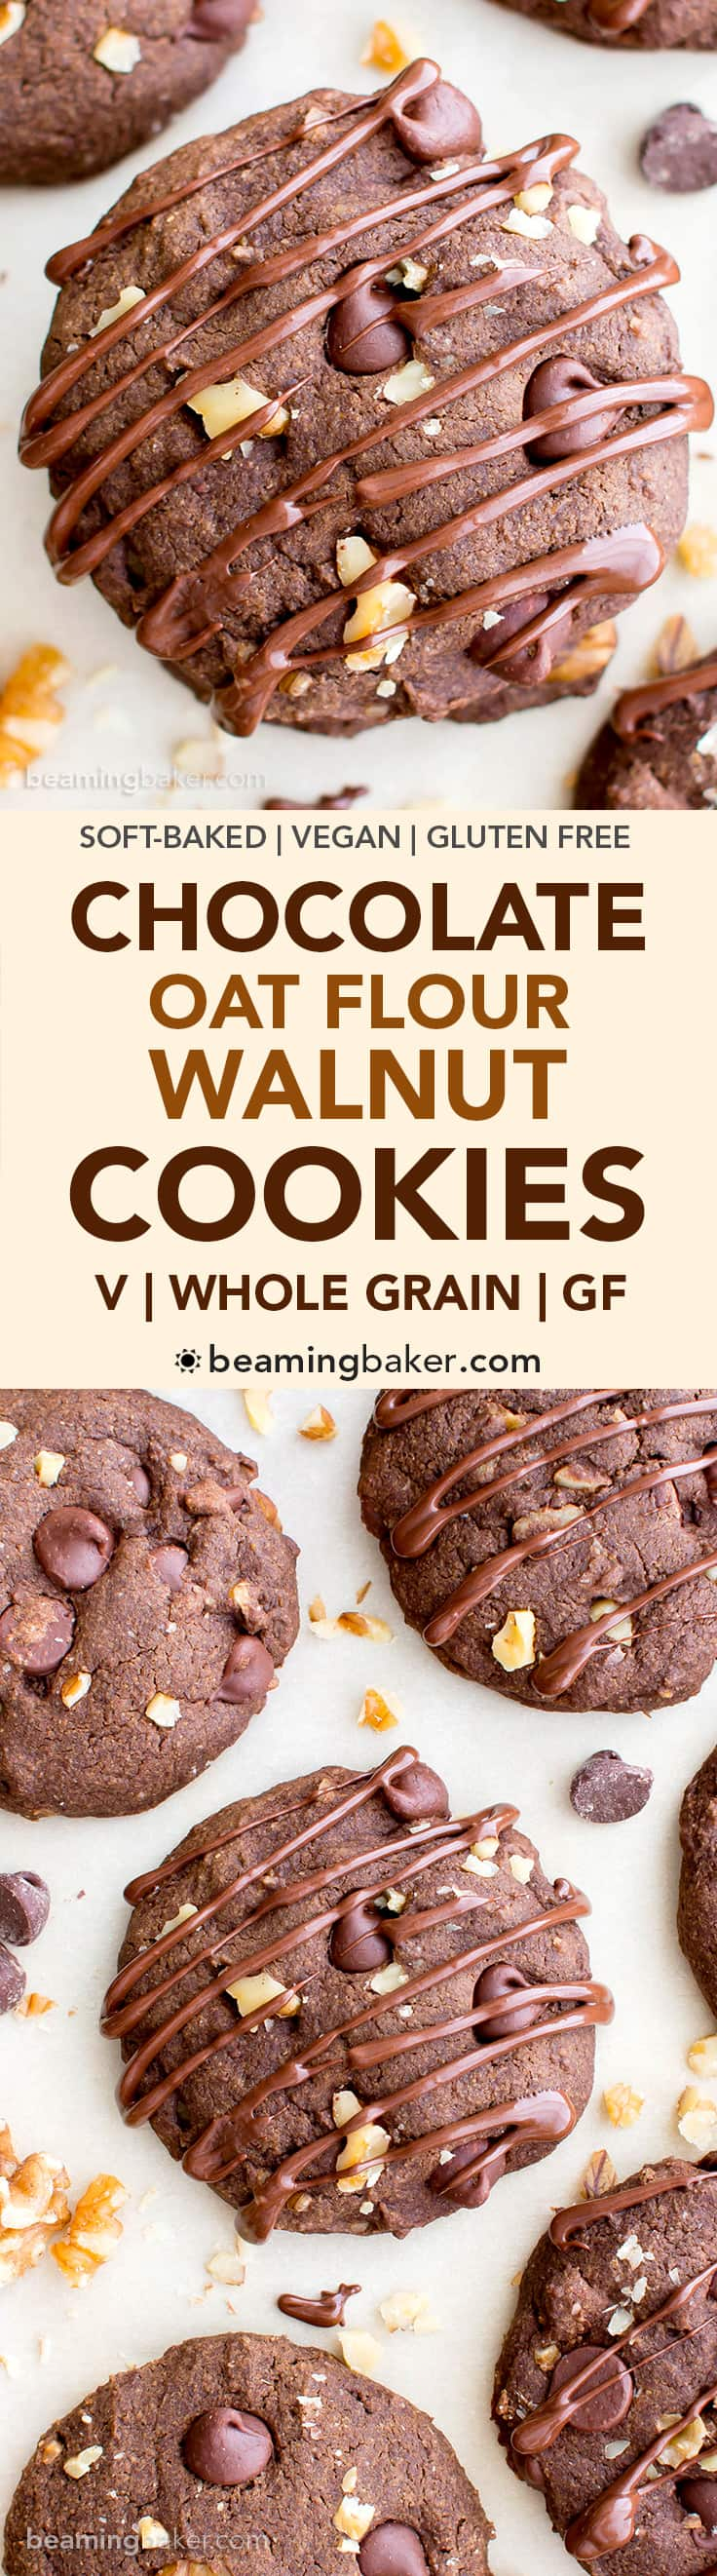 Drizzled Chocolate Walnut Oat Flour Cookies (V, GF, DF): an easy recipe for decadent, double chocolate oat flour cookies soft-baked to perfection. #Vegan #GlutenFree #DairyFree | BeamingBaker.com